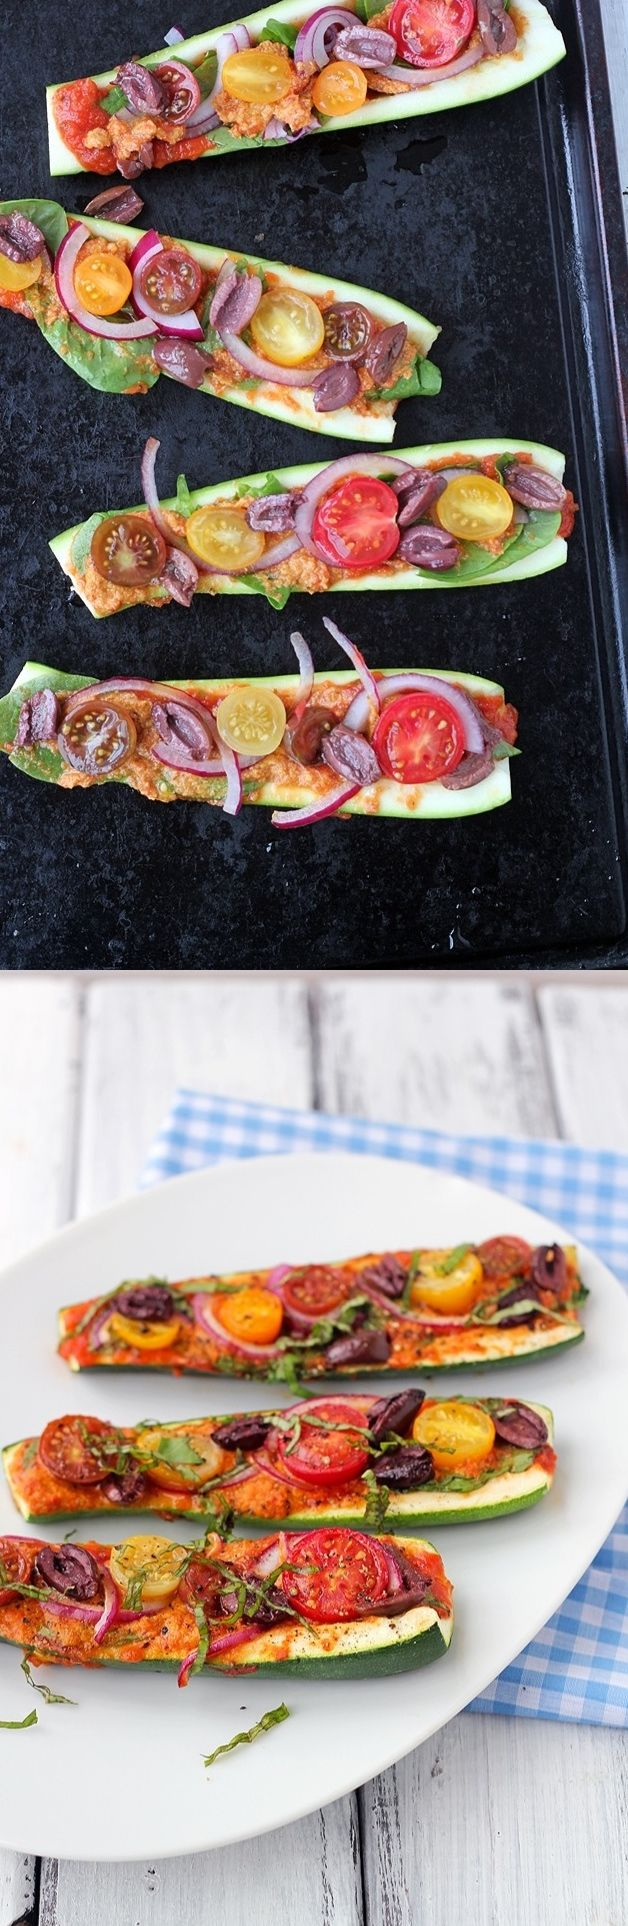 Zucchini Pizza Boats - A delicious, easy to prepare and healthy pizza. (Vegan, gluten free)